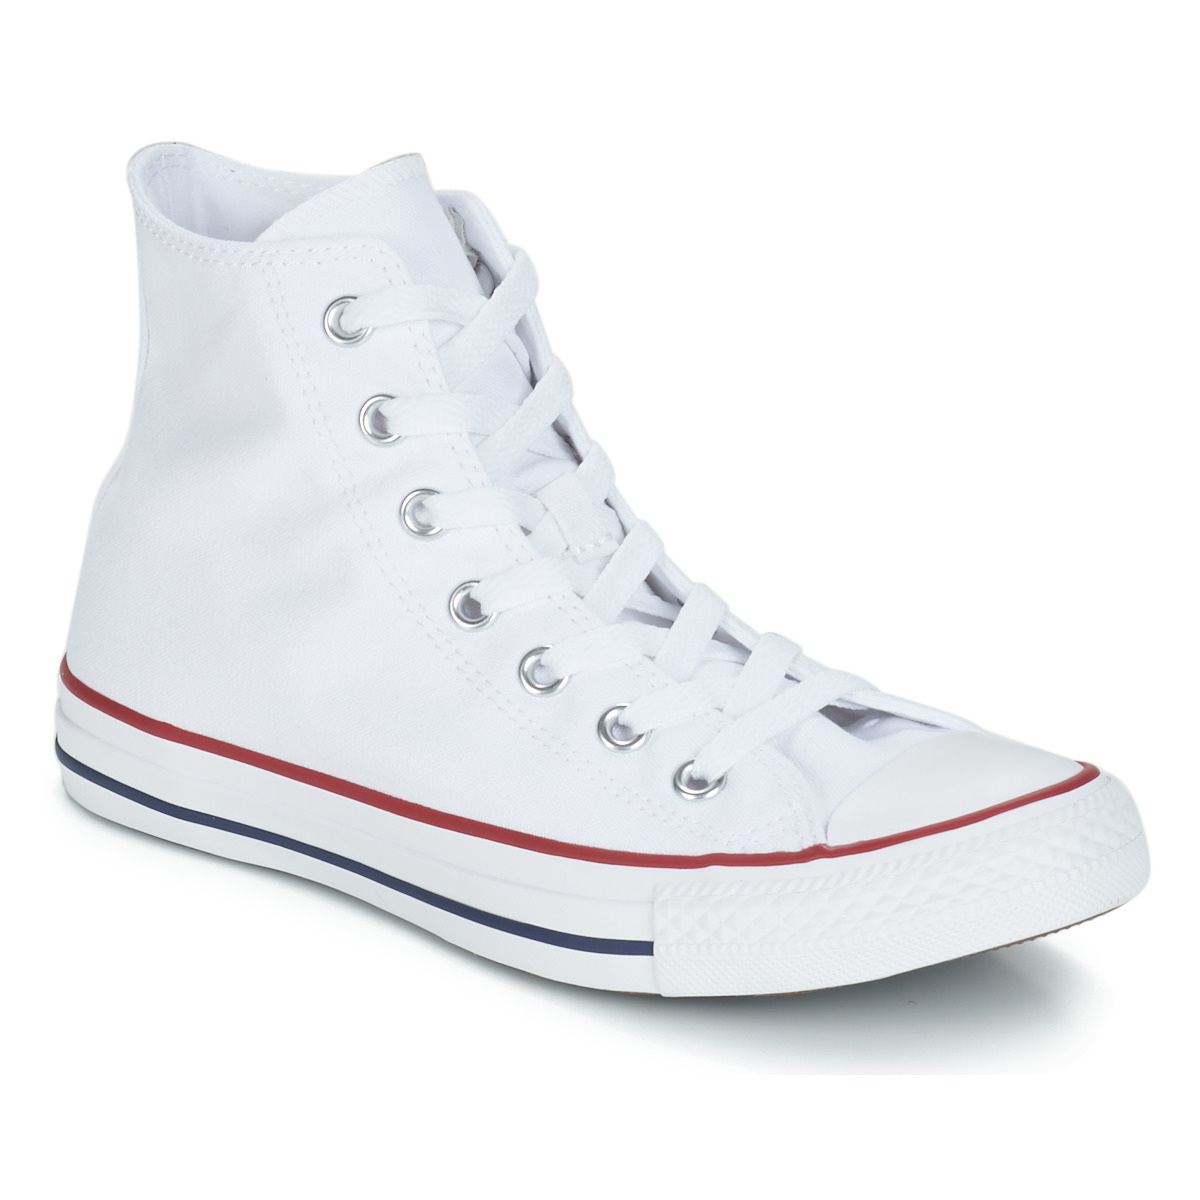 Converse ALL STAR CORE HI Optical White